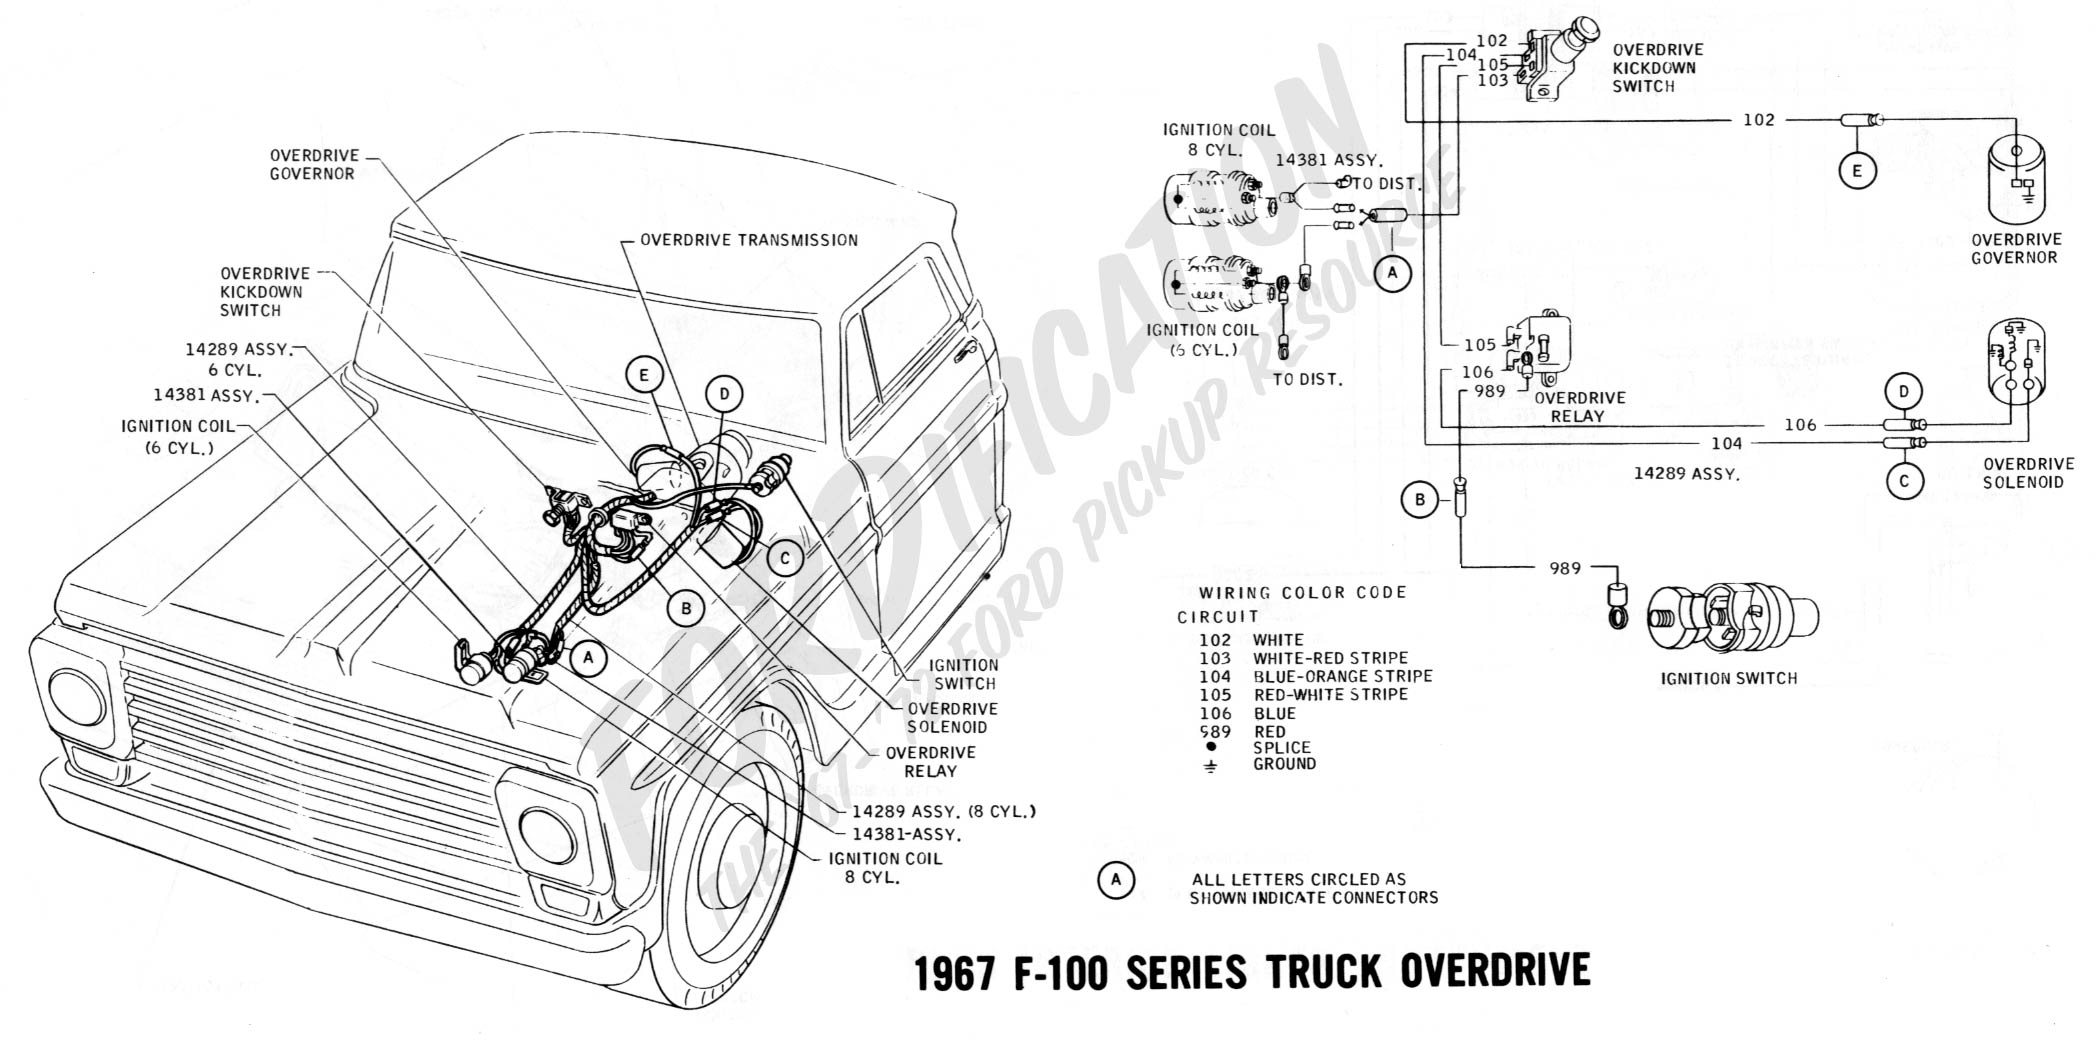 1997 Econoline Fuse Diagram 1967 Ford Wiring Detailed Schematics Online 63